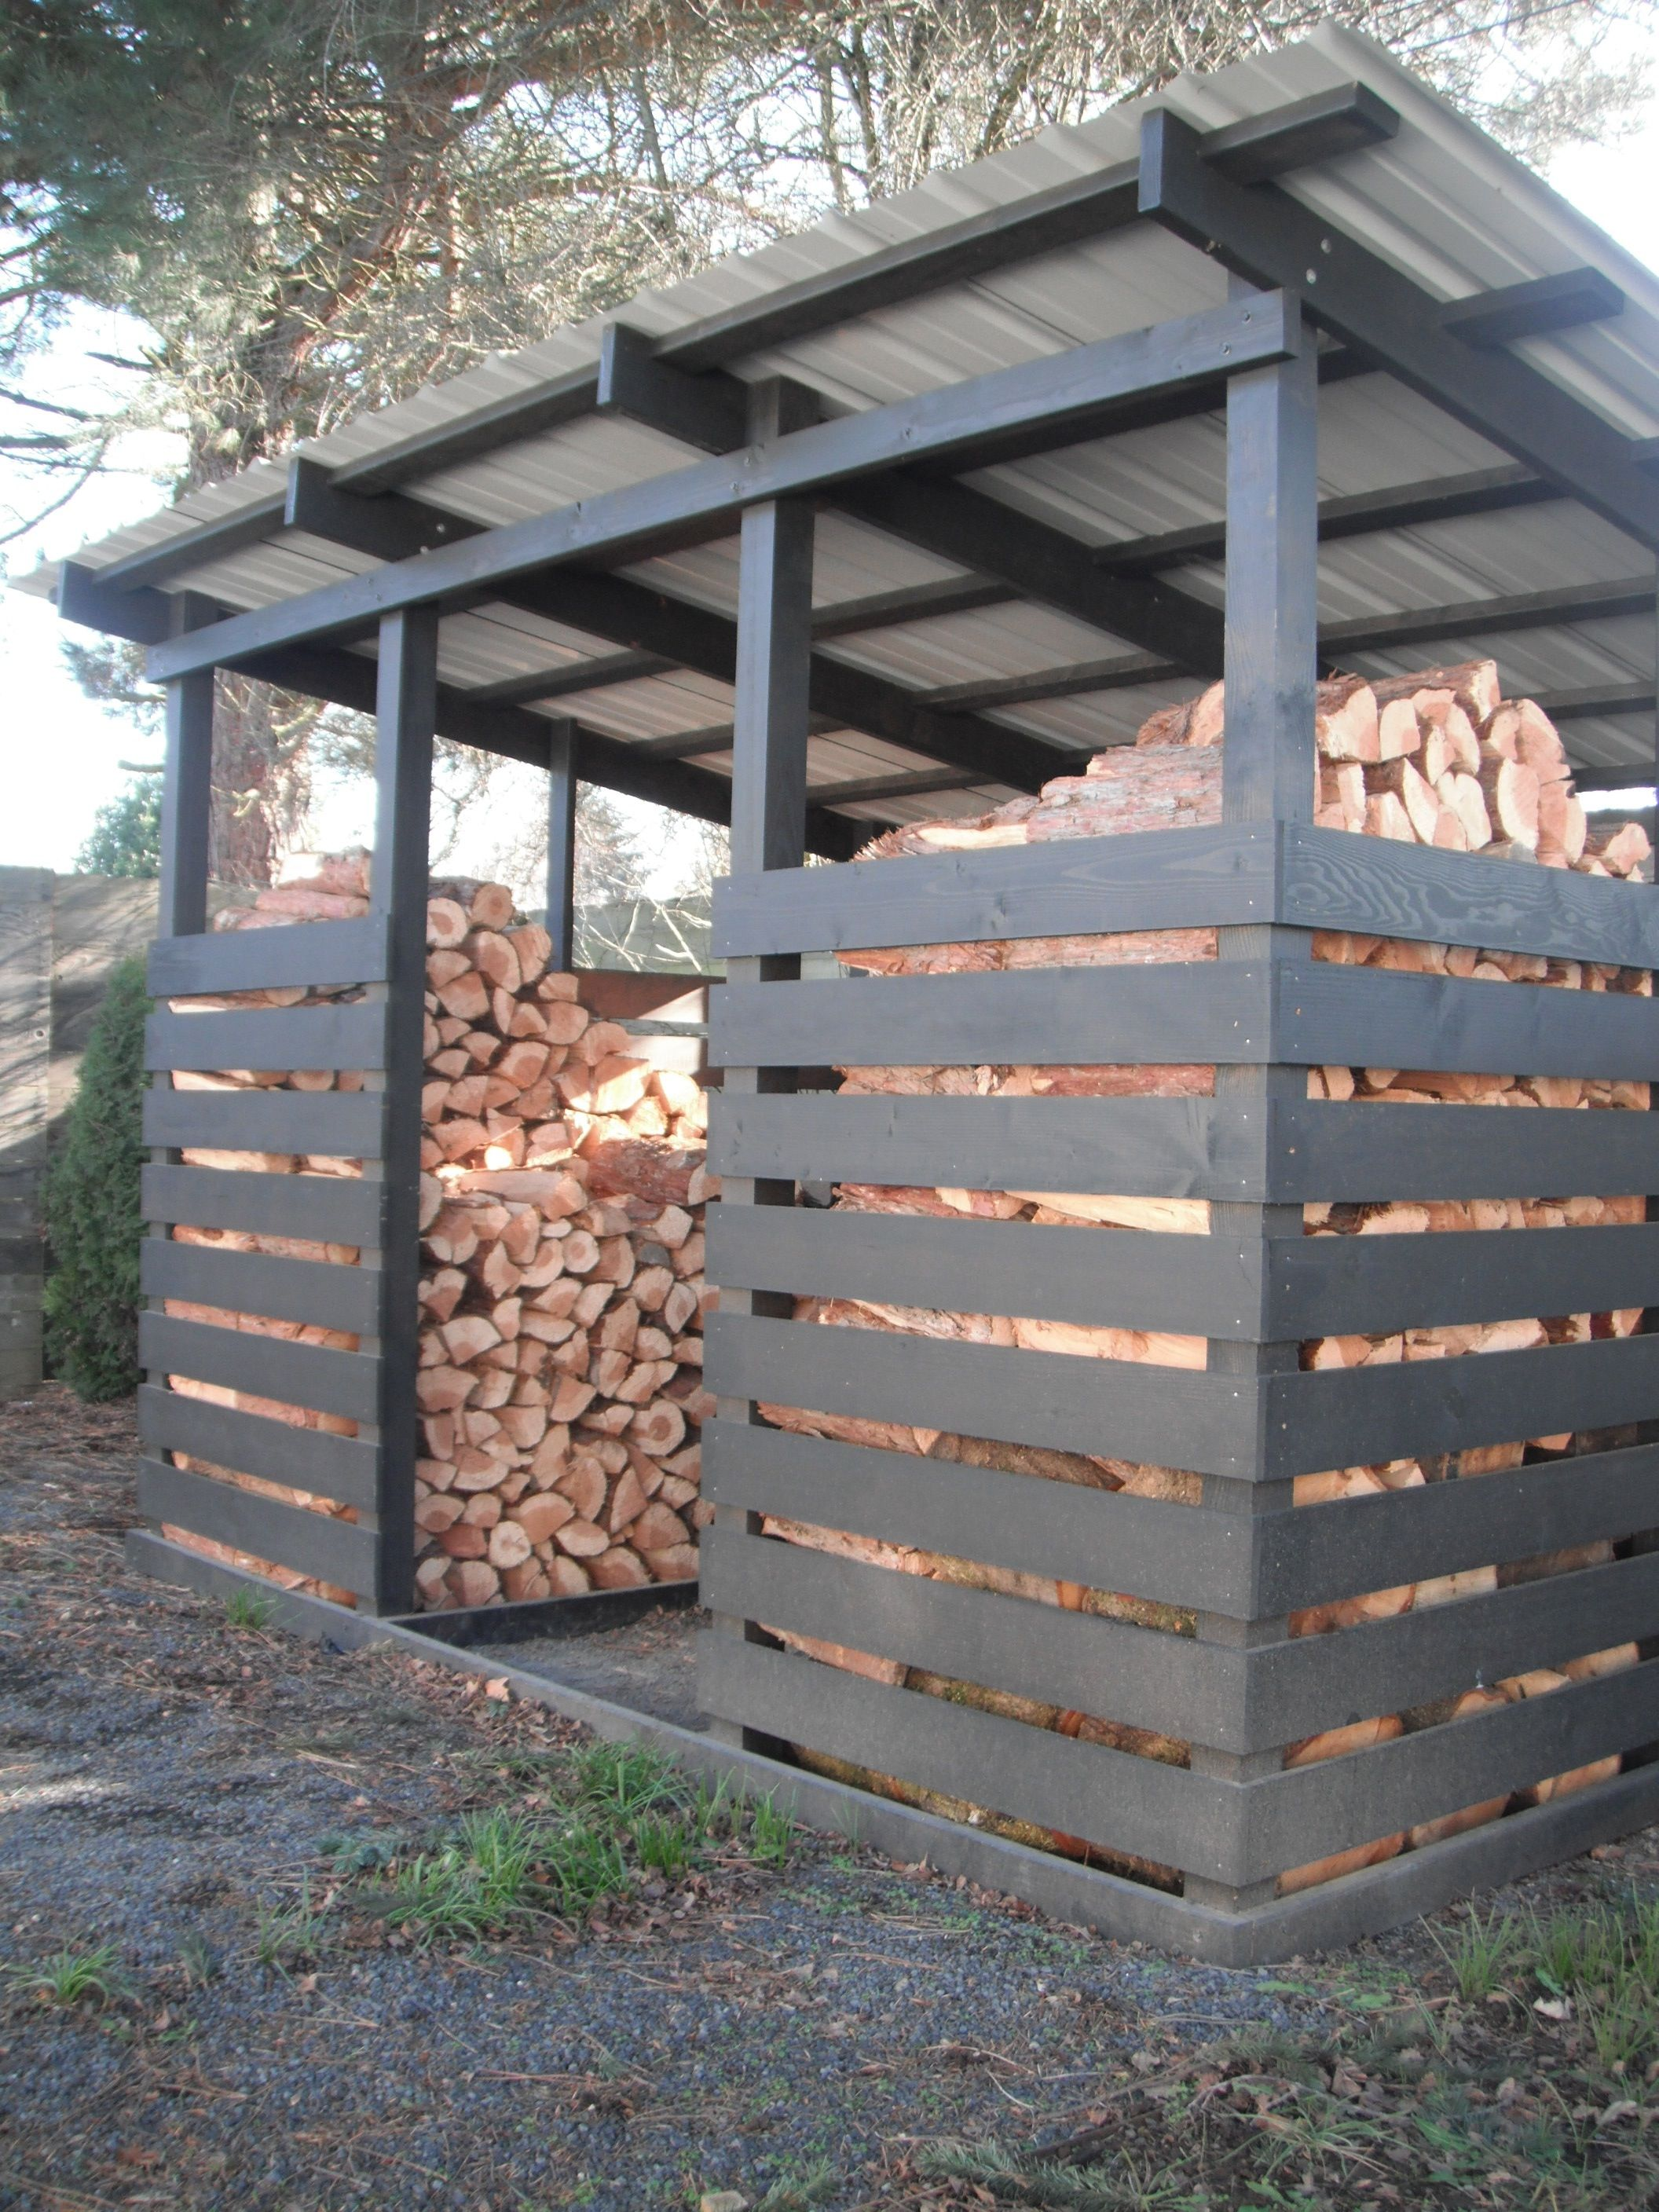 Woodshed For Winter Wood Abri Bois De Chauffage Amenagement Jardin Amenagement Exterieur